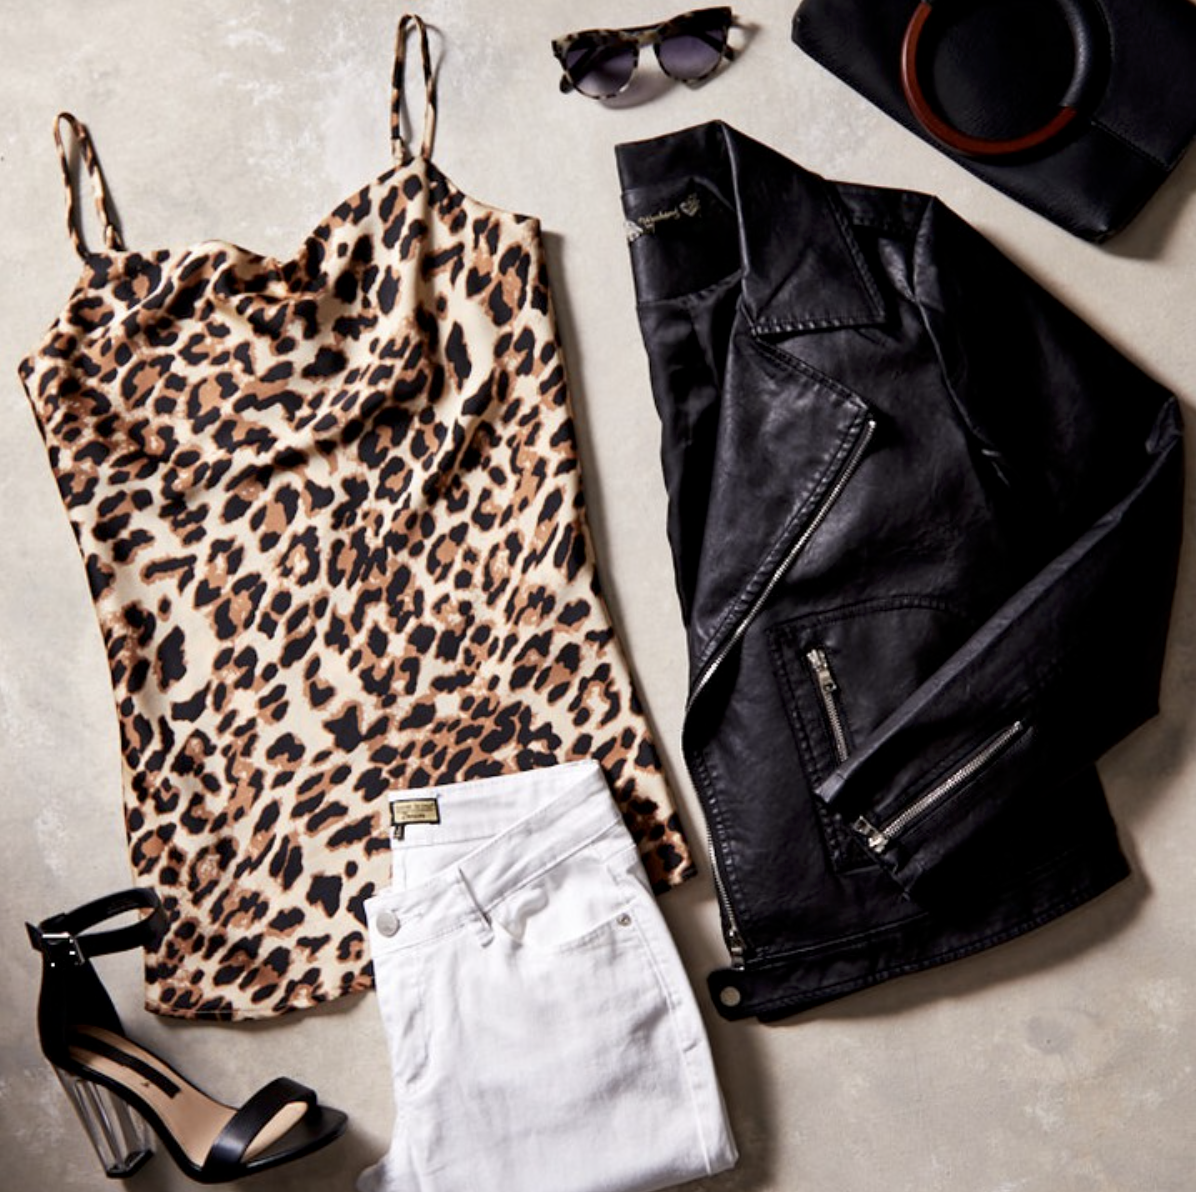 Zulilly-fashion-shopping-cheetah-print-leather-jacket